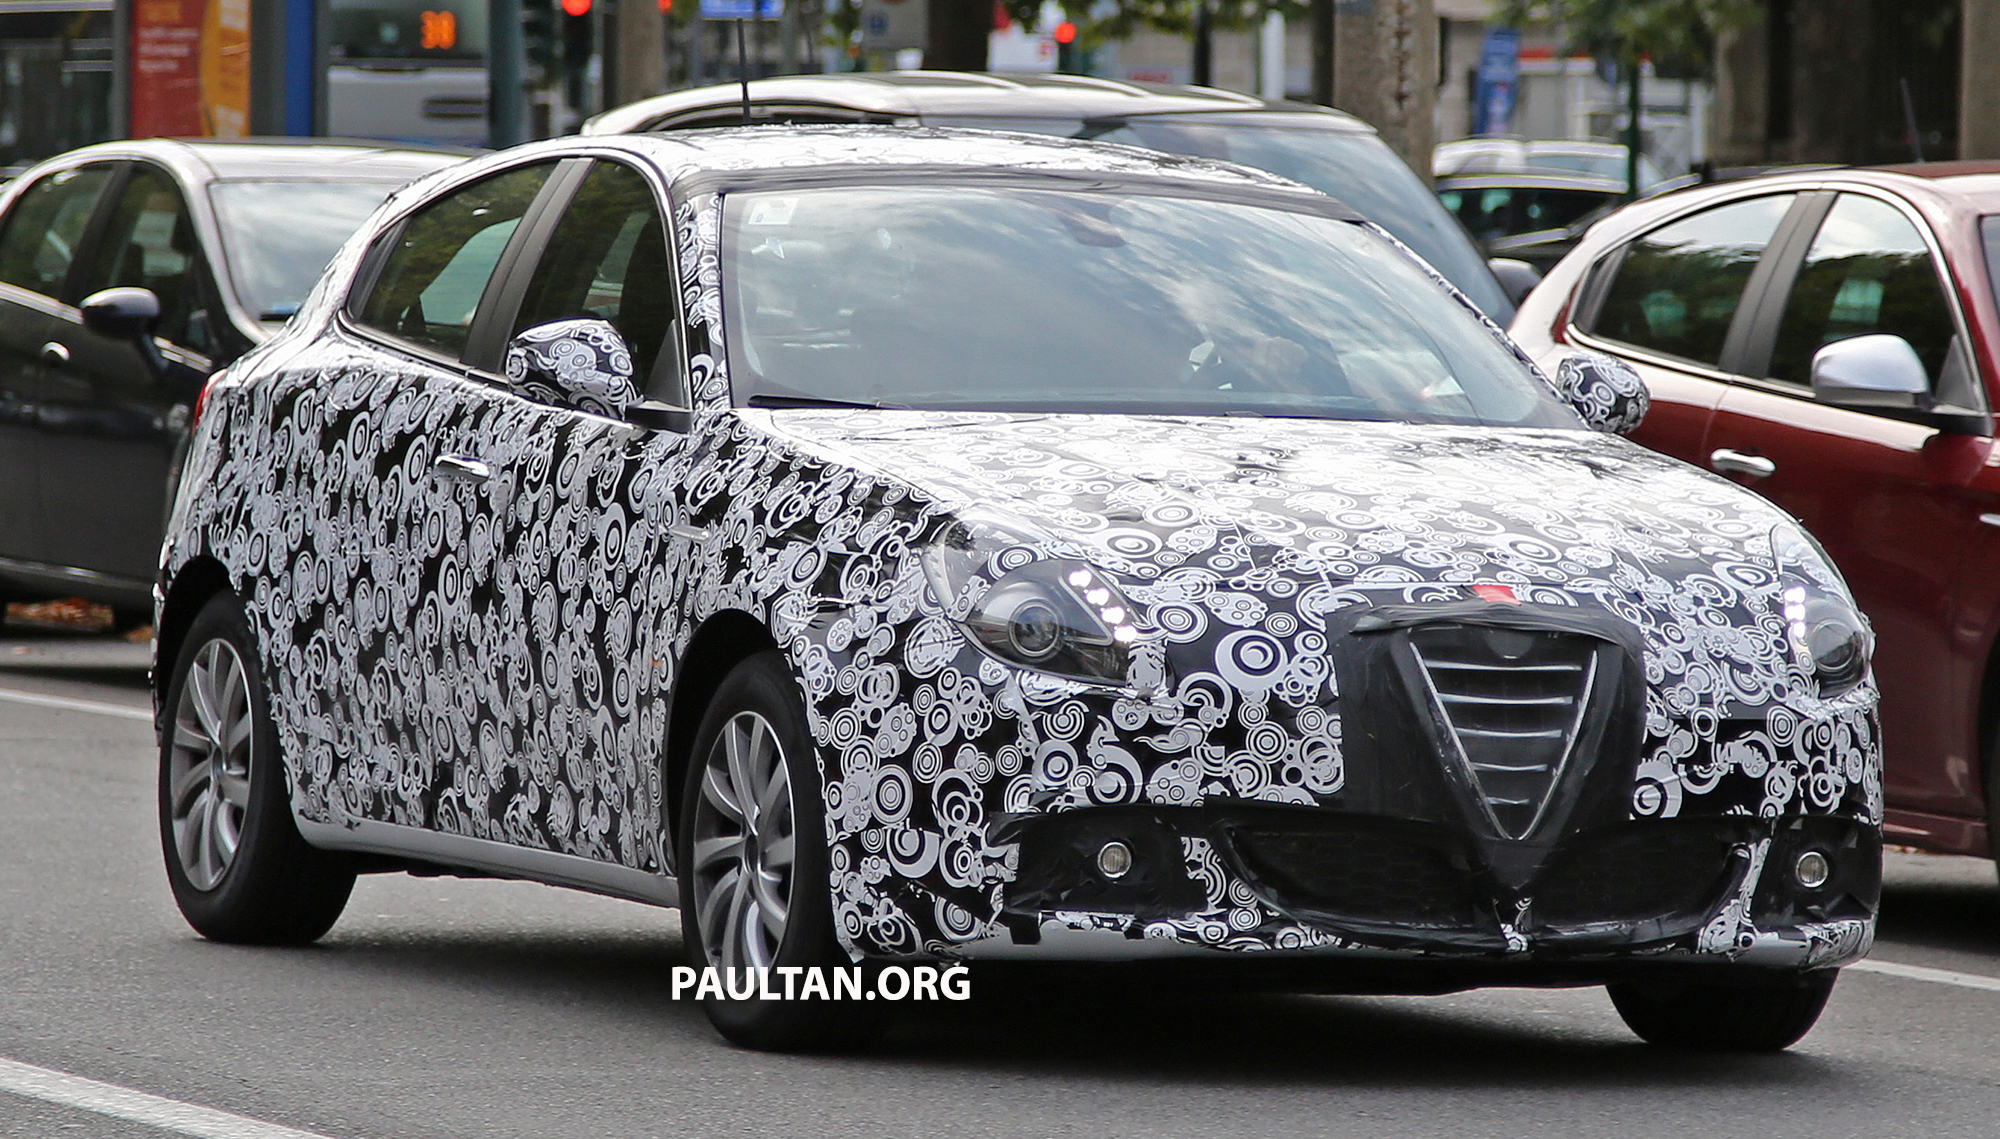 SPIED: Alfa Romeo Giulietta facelift spotted in Italy Paul Tan ... on alfa romeo 8c, alfa romeo 147, alfa romeo cars, alfa romeo models, alfa romeo giulia, alfa romeo 1750, alfa romeo gtv, alfa romeo brera, alfa romeo sedan, alfa romeo trucks, alfa romeo graduate, alfa romeo gtv6, alfa romeo spider veloce, alfa romeo zagato, alfa romeo alfetta, alfa romeo c spiders, alfa romeo 164, alfa romeo gta, alfa romeo 75, alfa romeo gt,